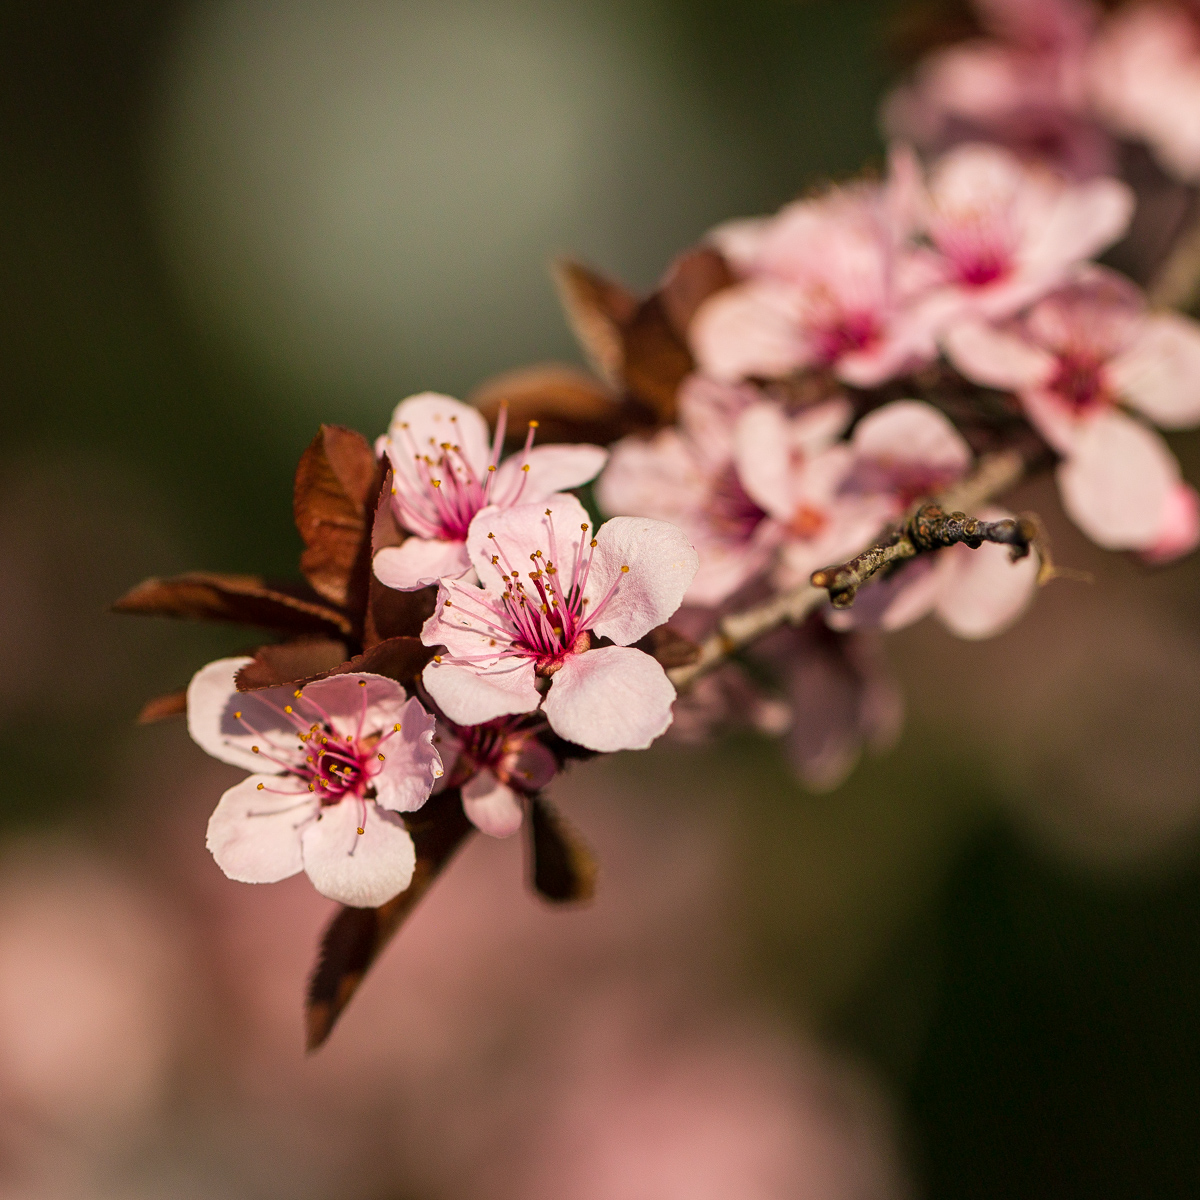 Ornamental almond blossoms